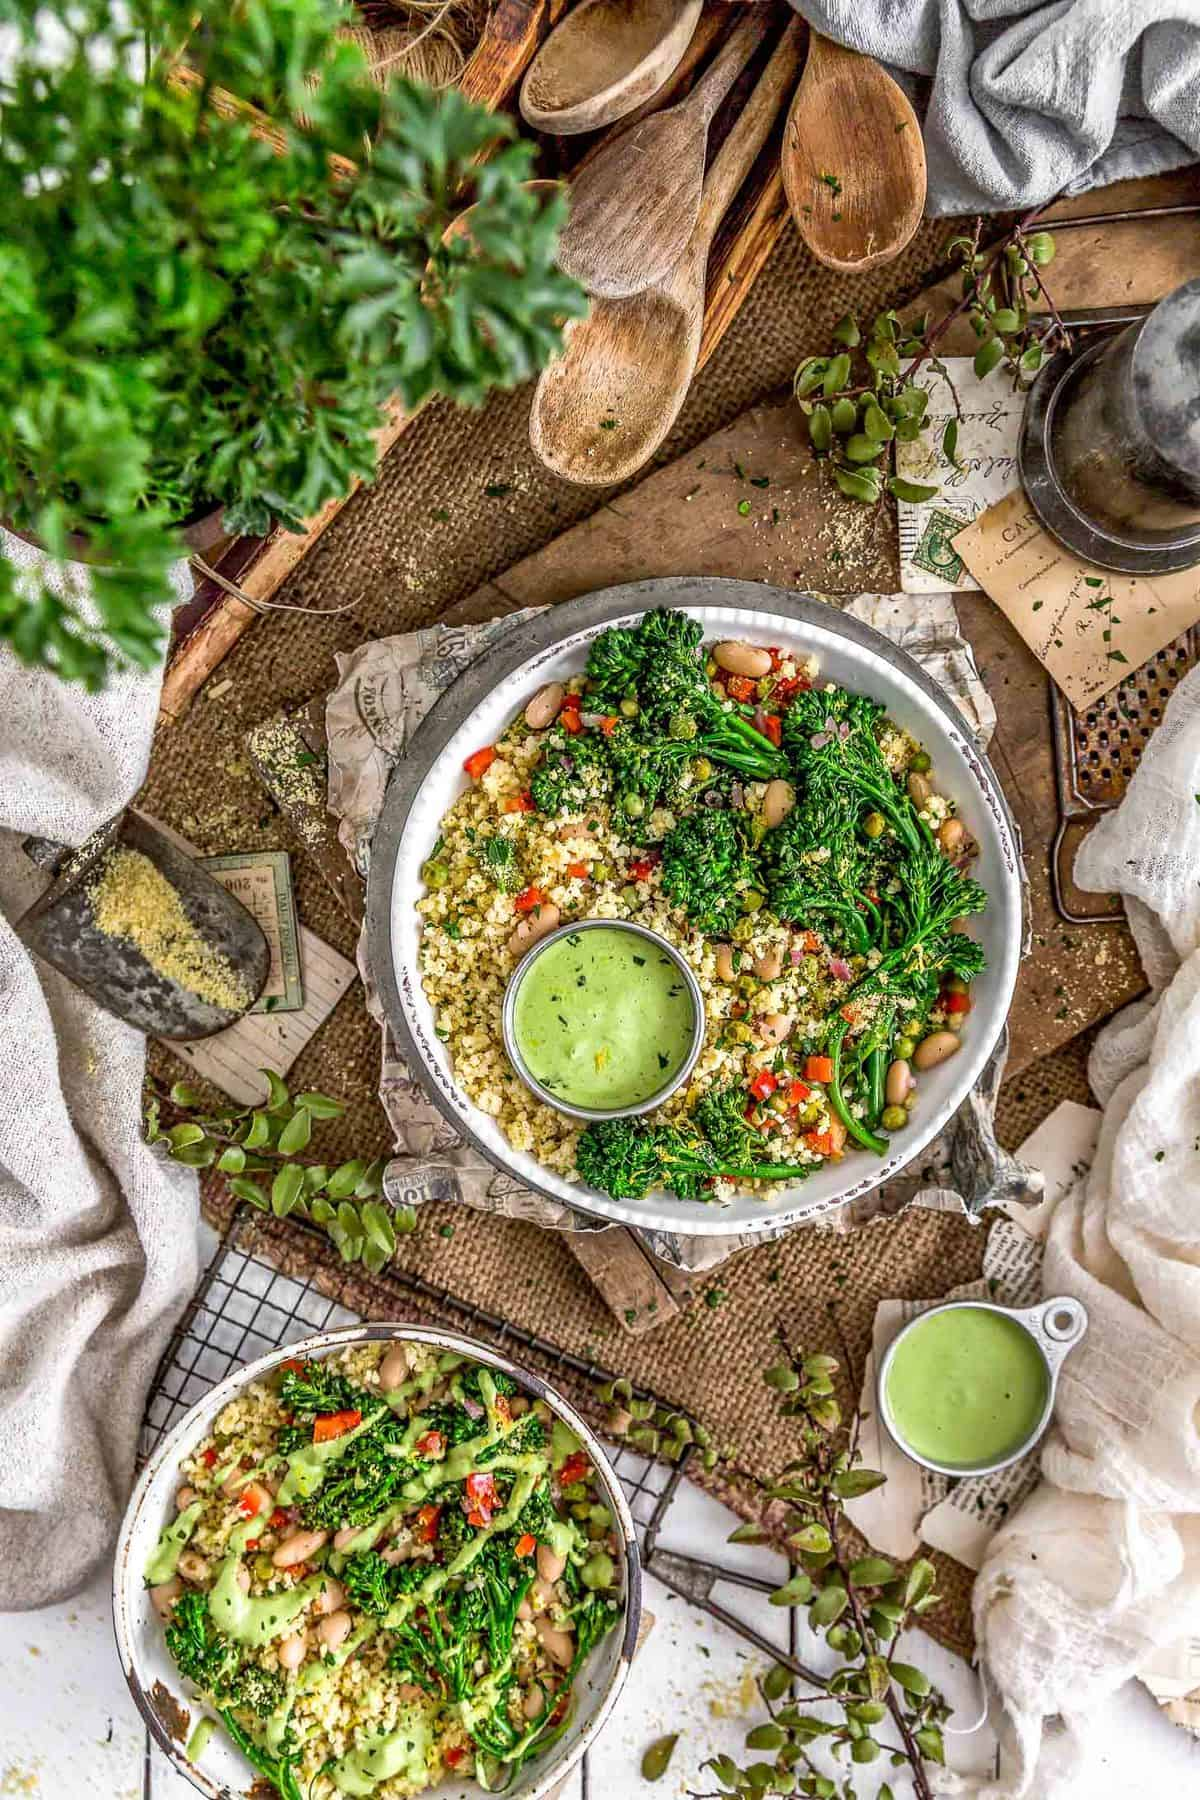 Tablescape of Italian Broccolini Millet Bowl with Lemony Parsley Sauce